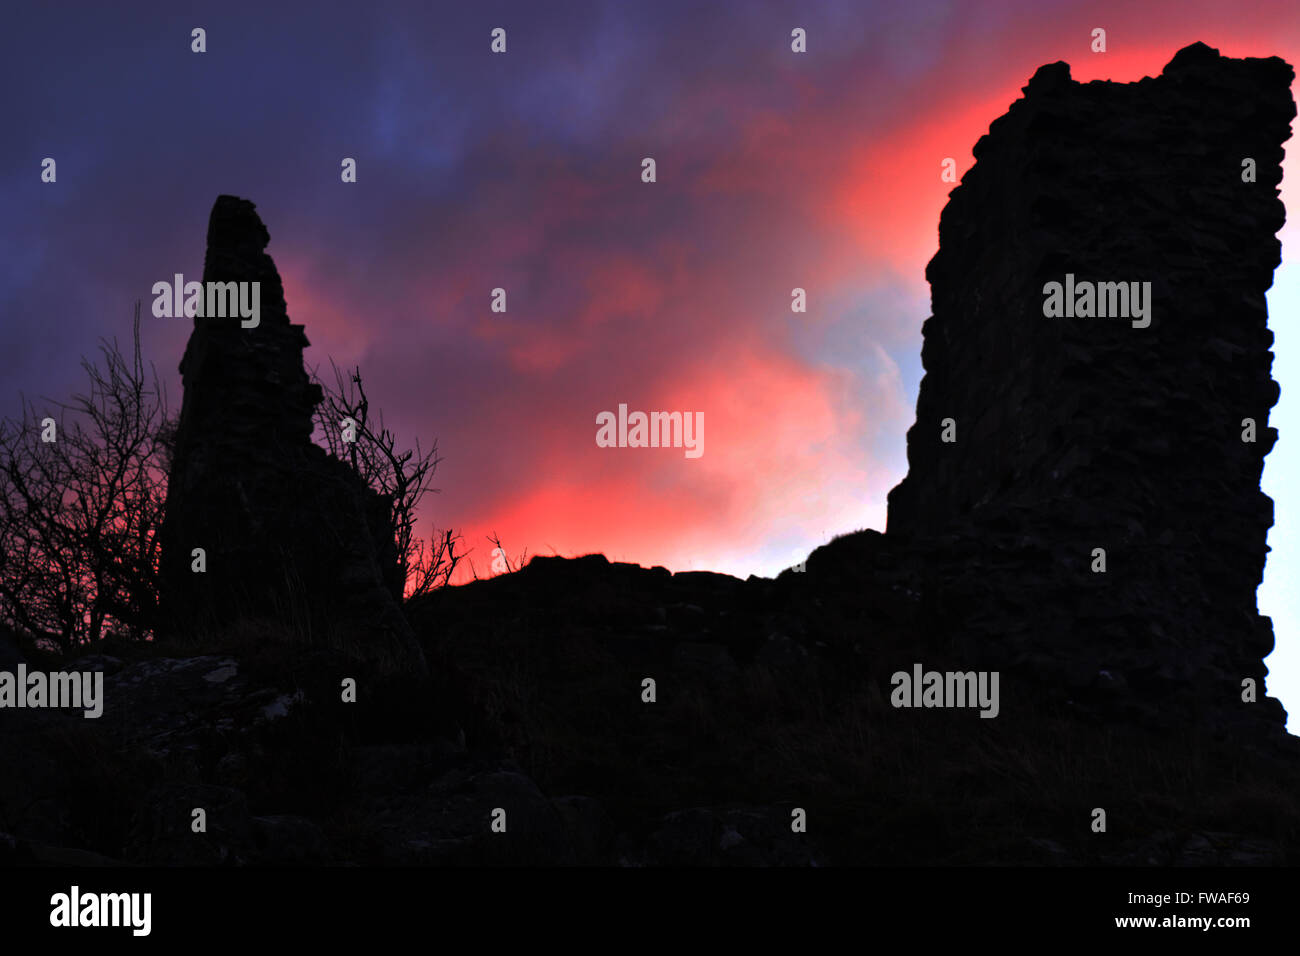 Sunrise over the ruined castle of Caisteal Maol - Stock Image